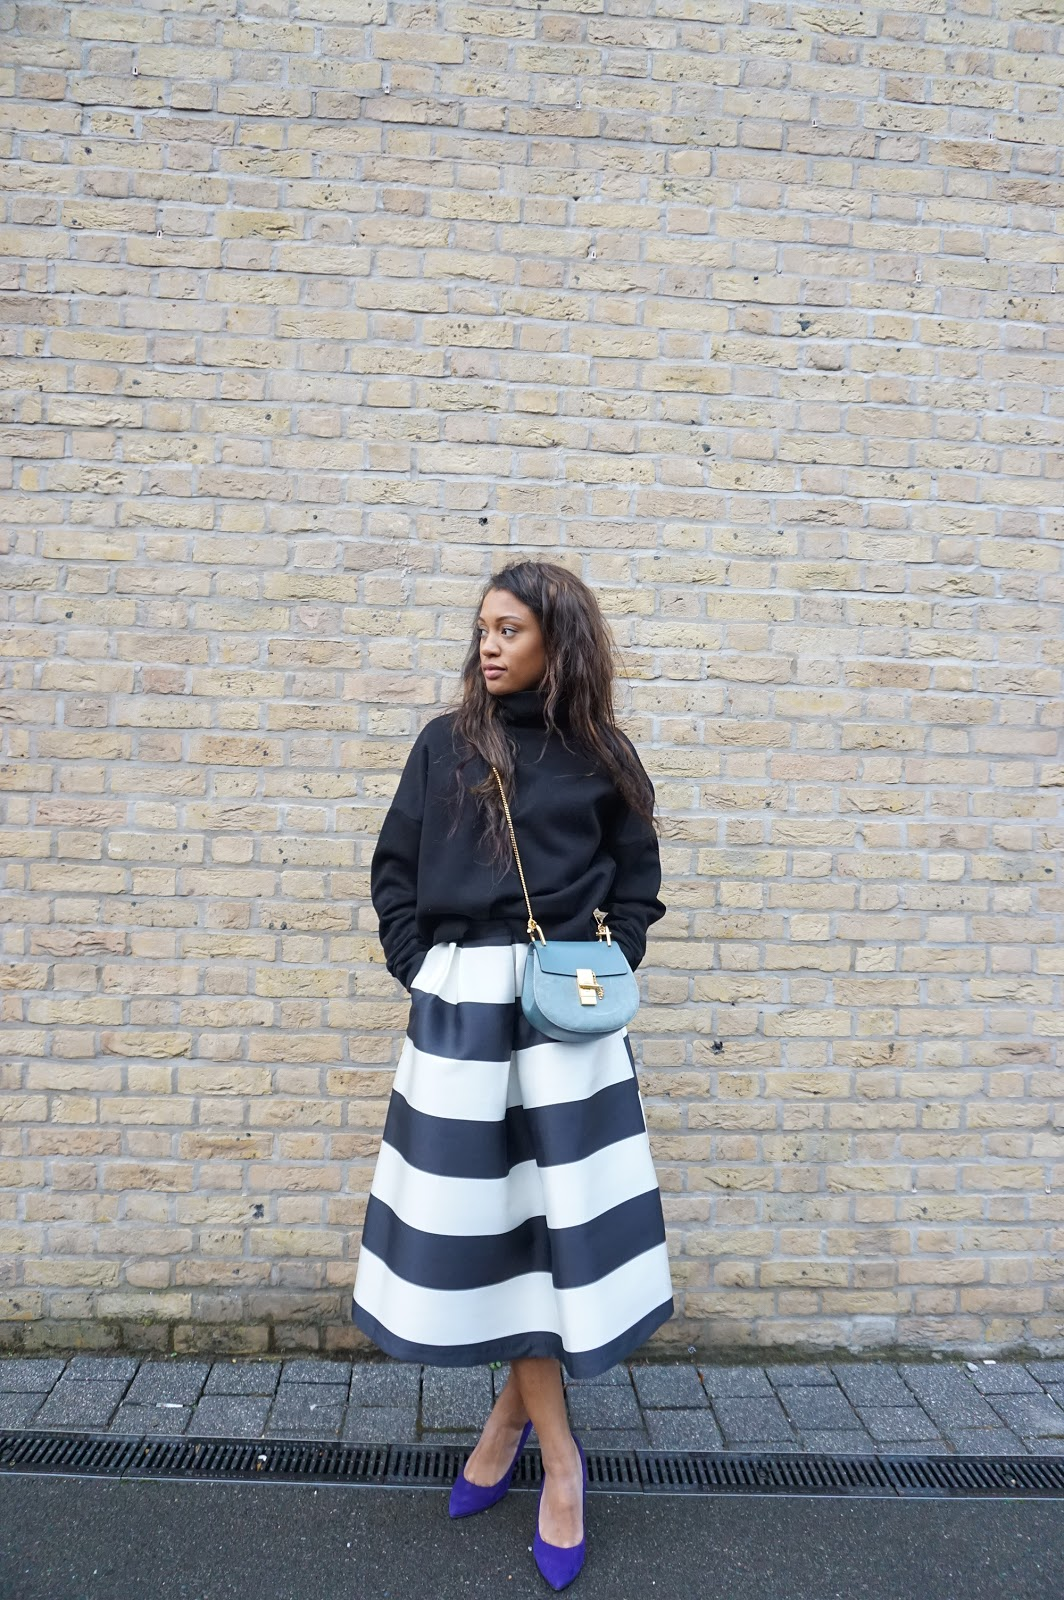 The Monochrome Skirt